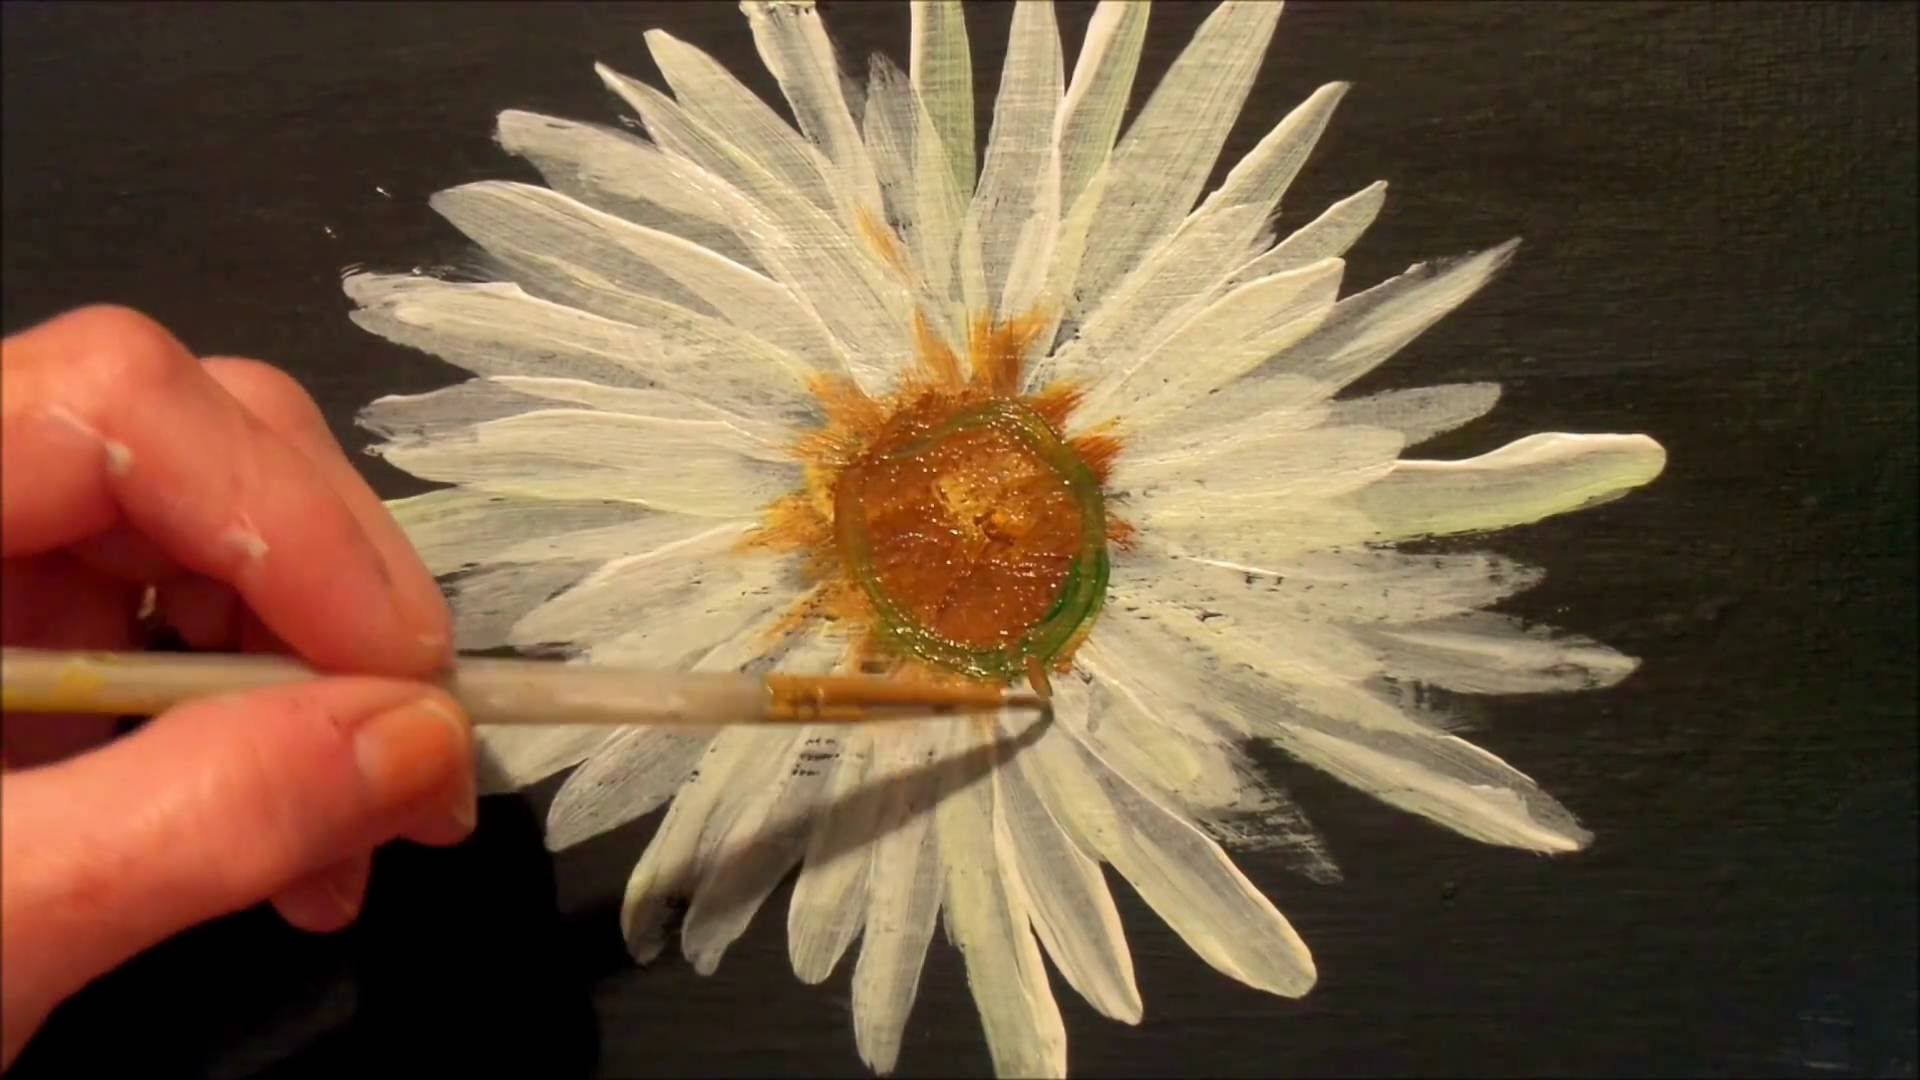 How To Paint A Daisy With Acrylic Paint Easy Step By Step